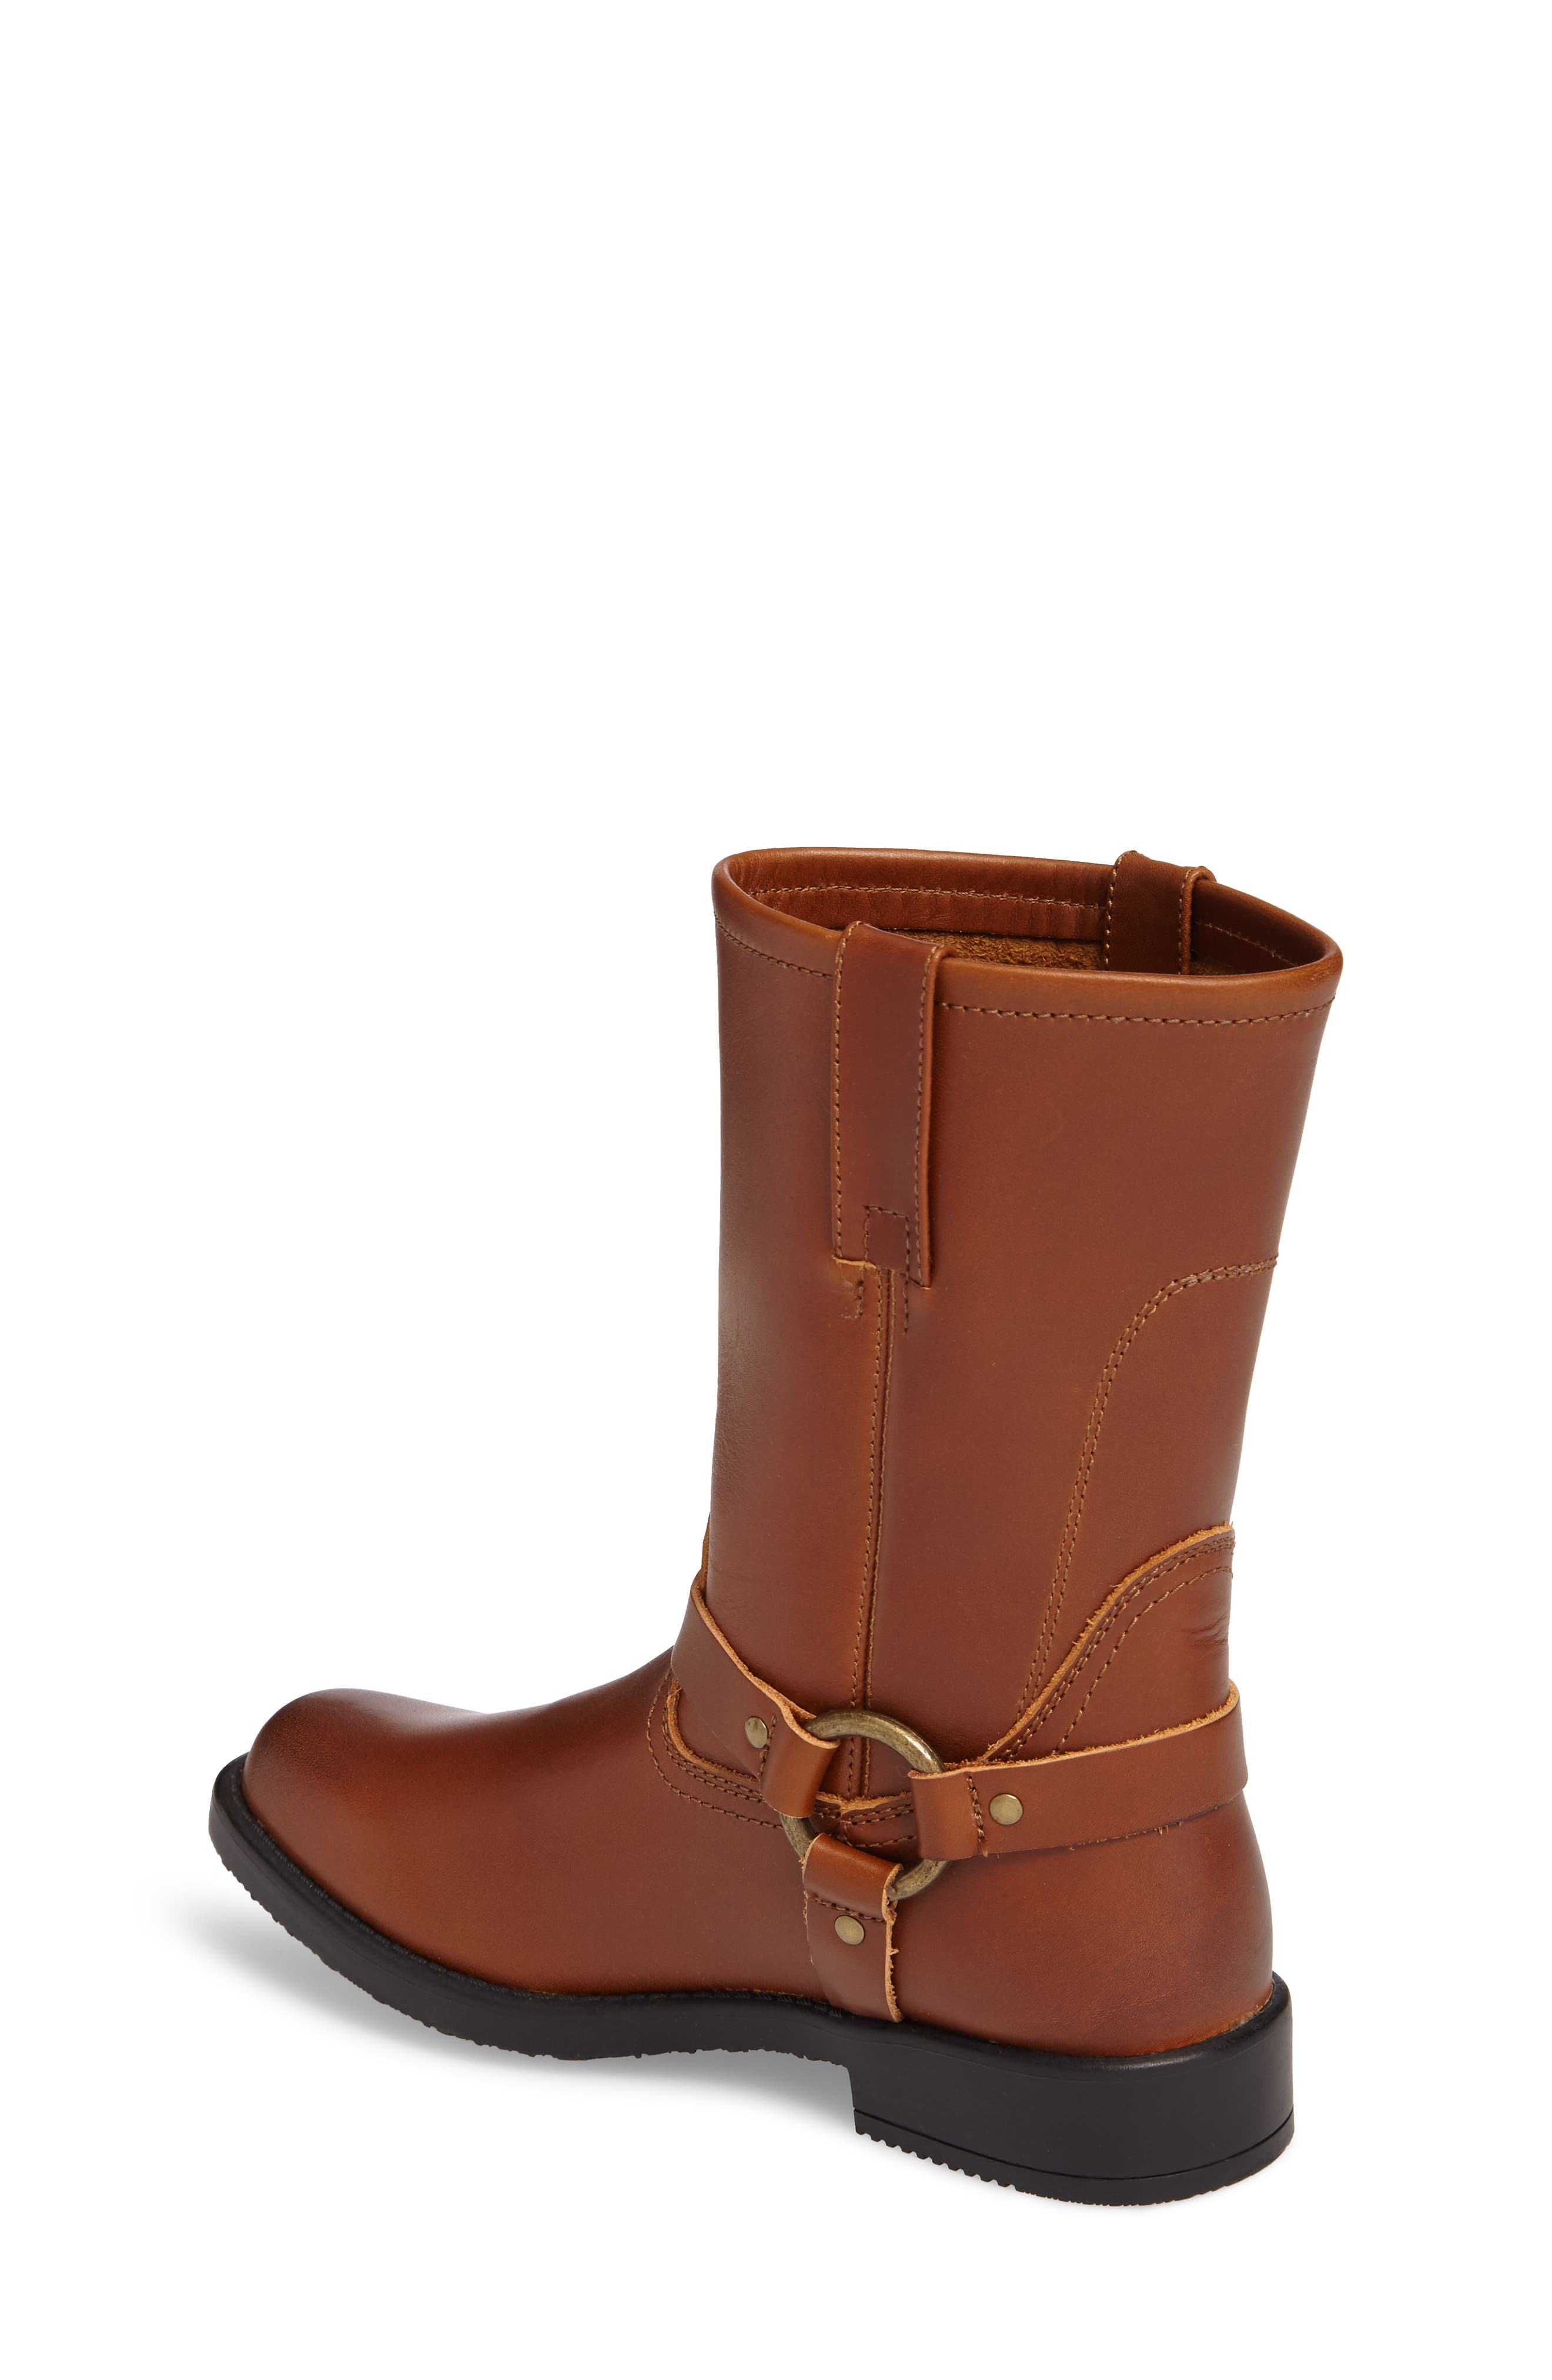 Harness Engineer Boot,                             Alternate thumbnail 2, color,                             Cognac